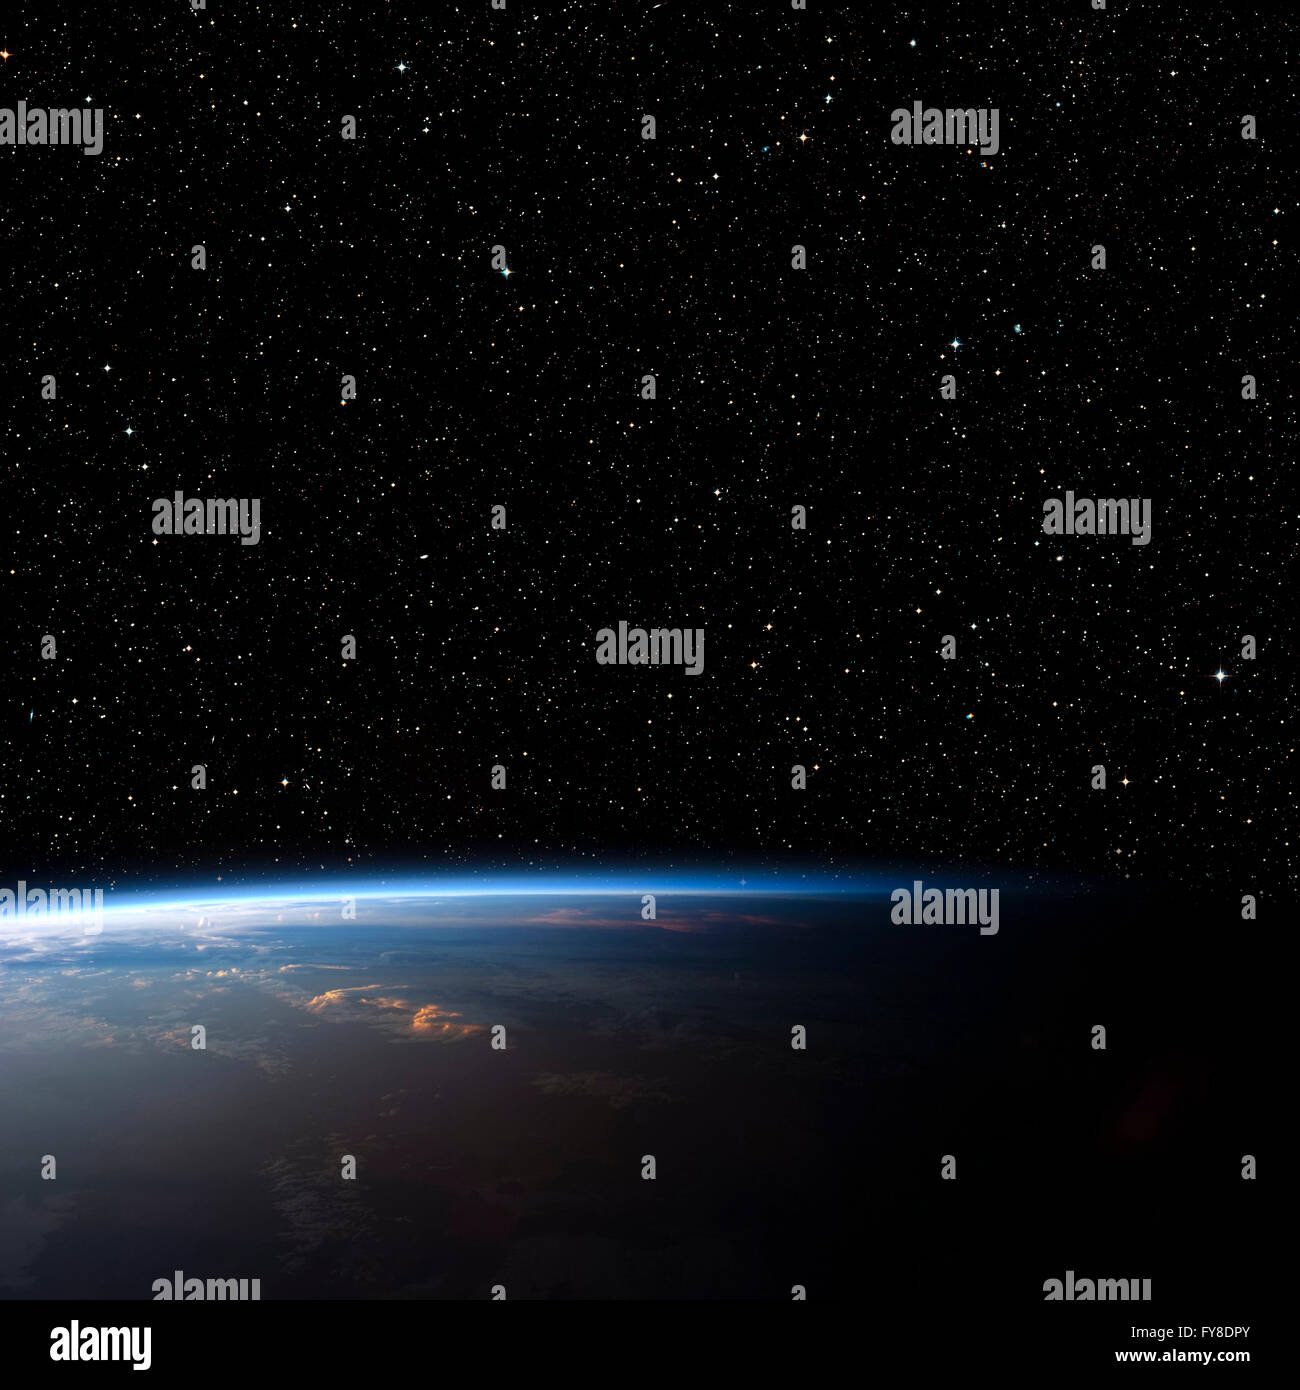 Planet Earth from space. Elements of this image furnished by NASA - Stock Image